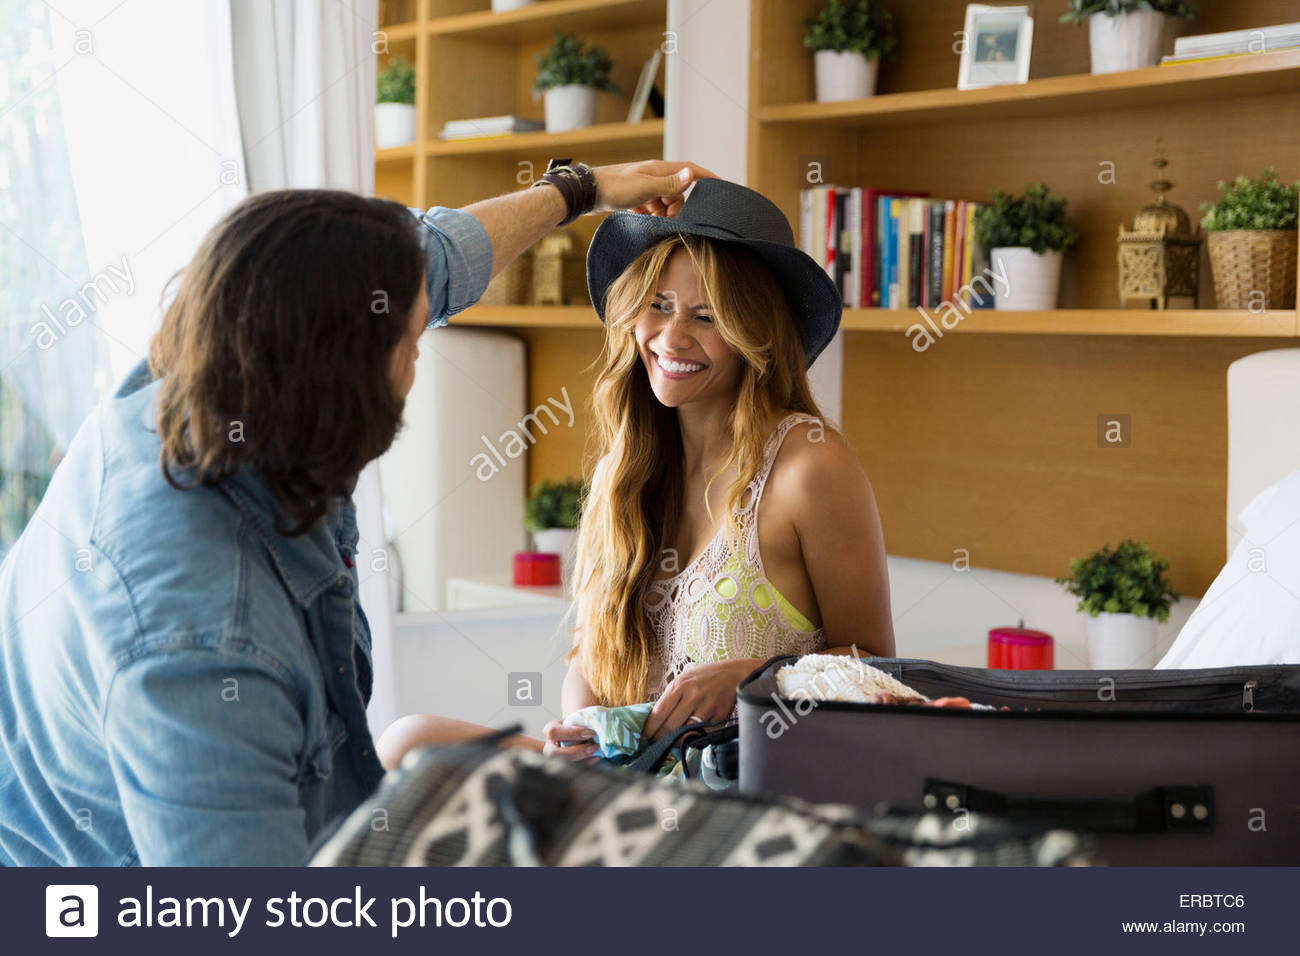 Man trying hat on woman near suitcase - Stock Image